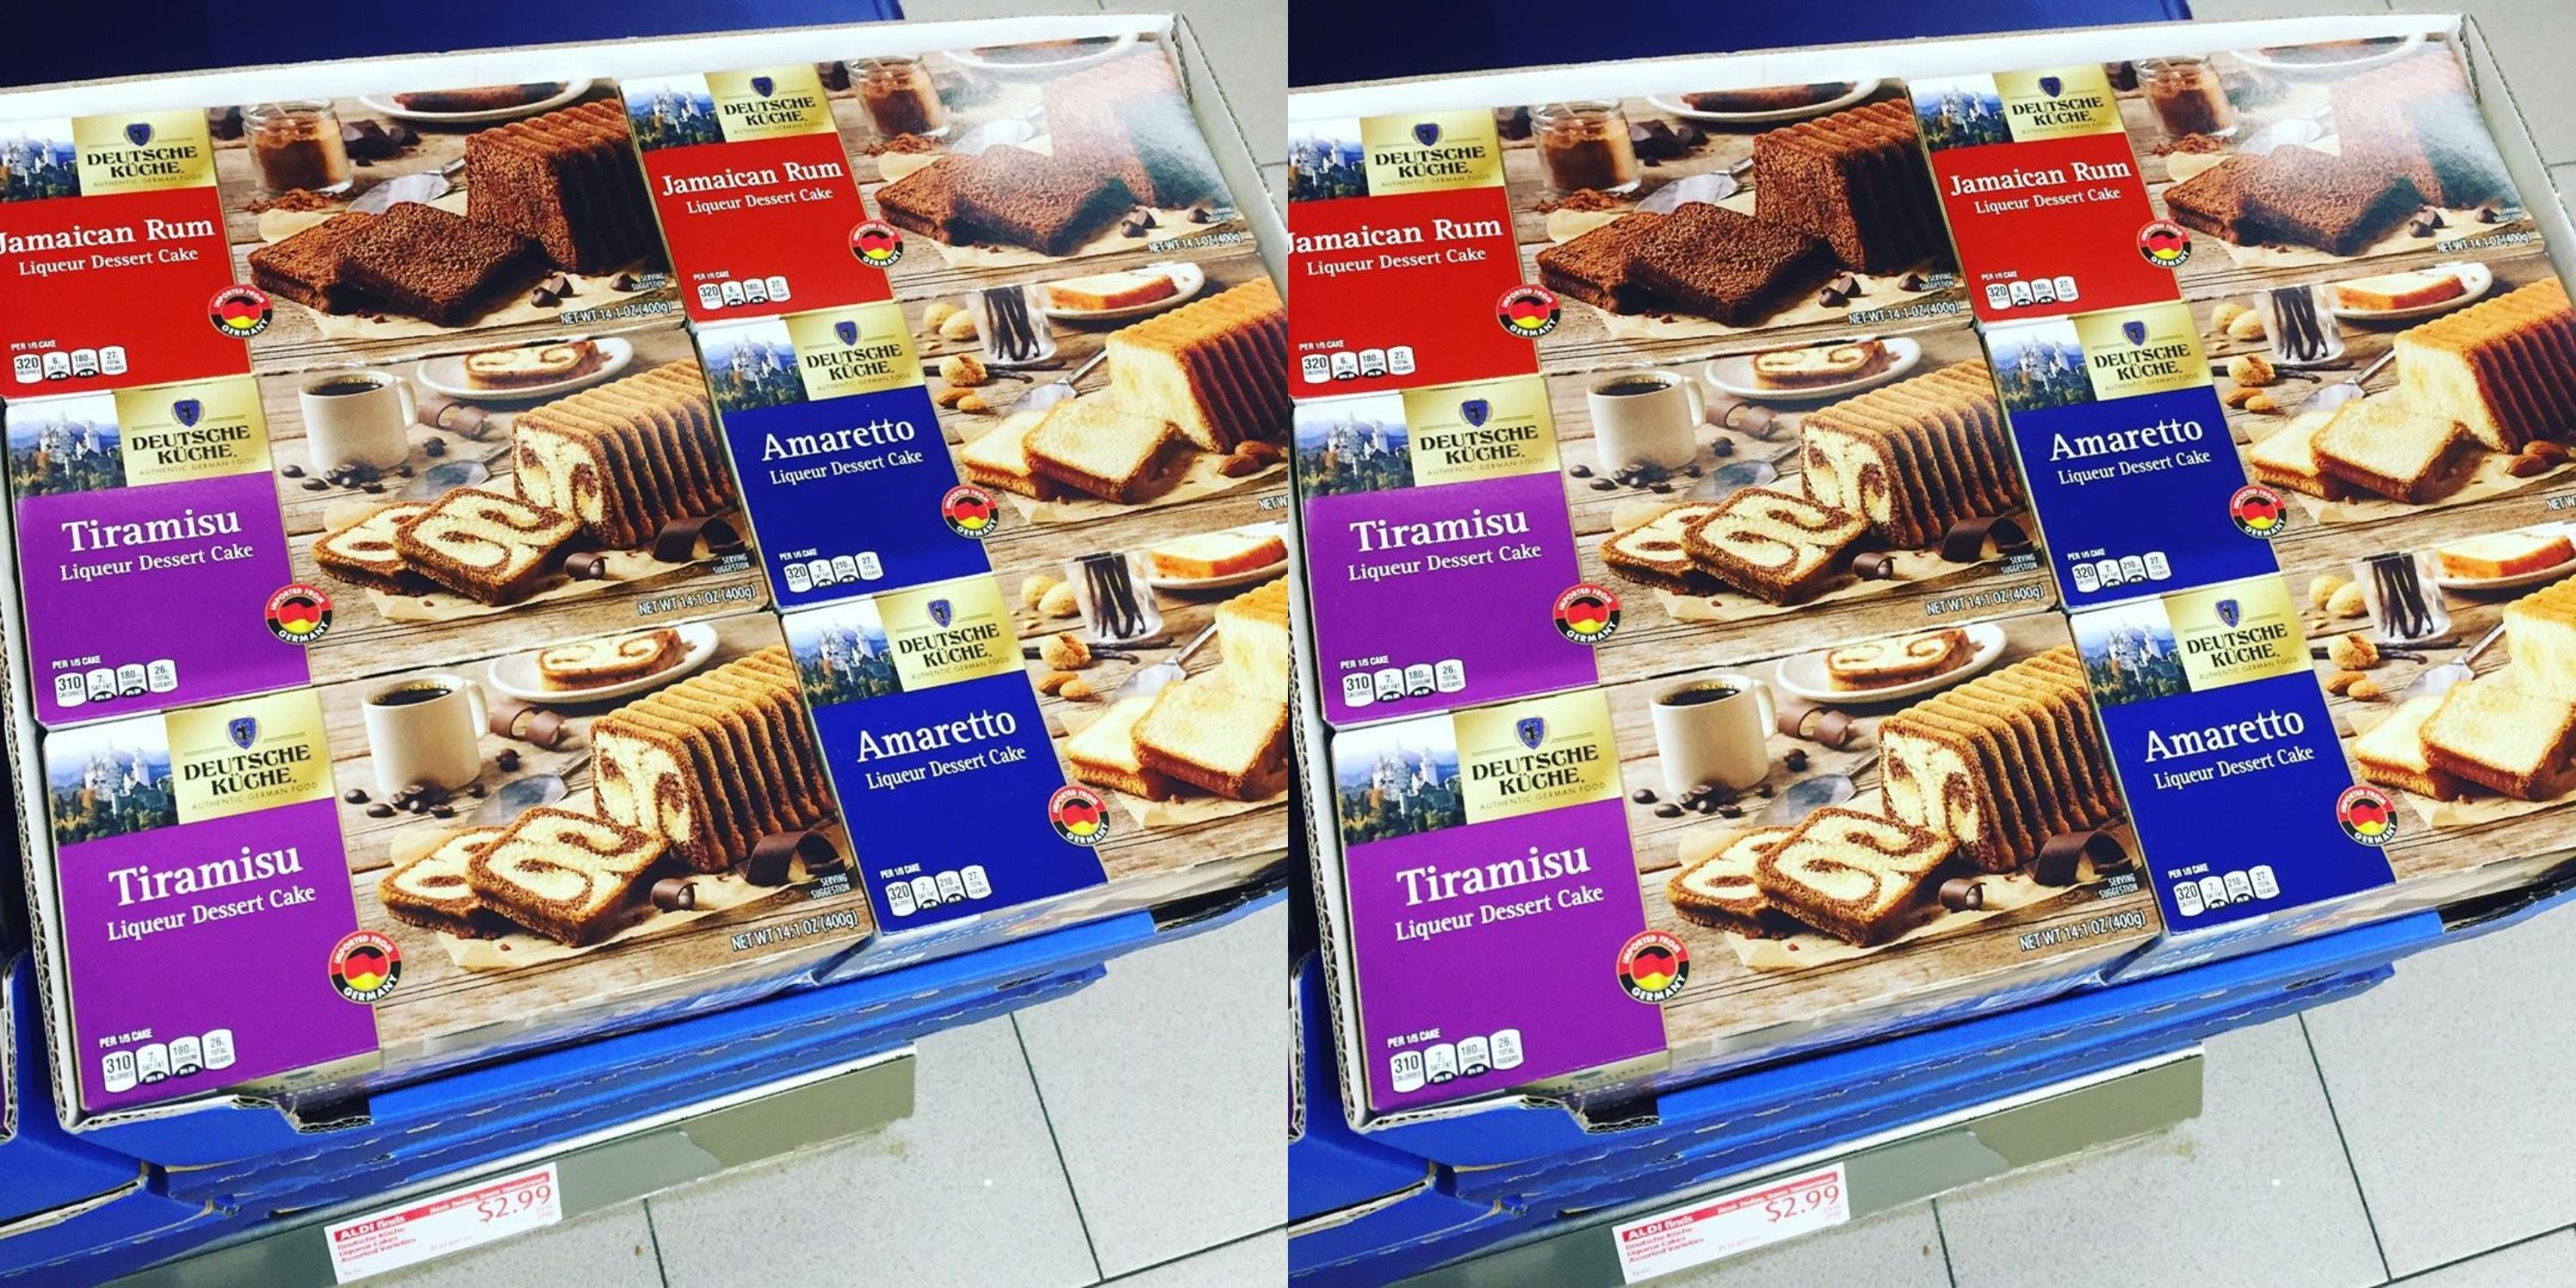 Aldi Is Selling Tiramisu And Jamaican Rum Loaf Cakes